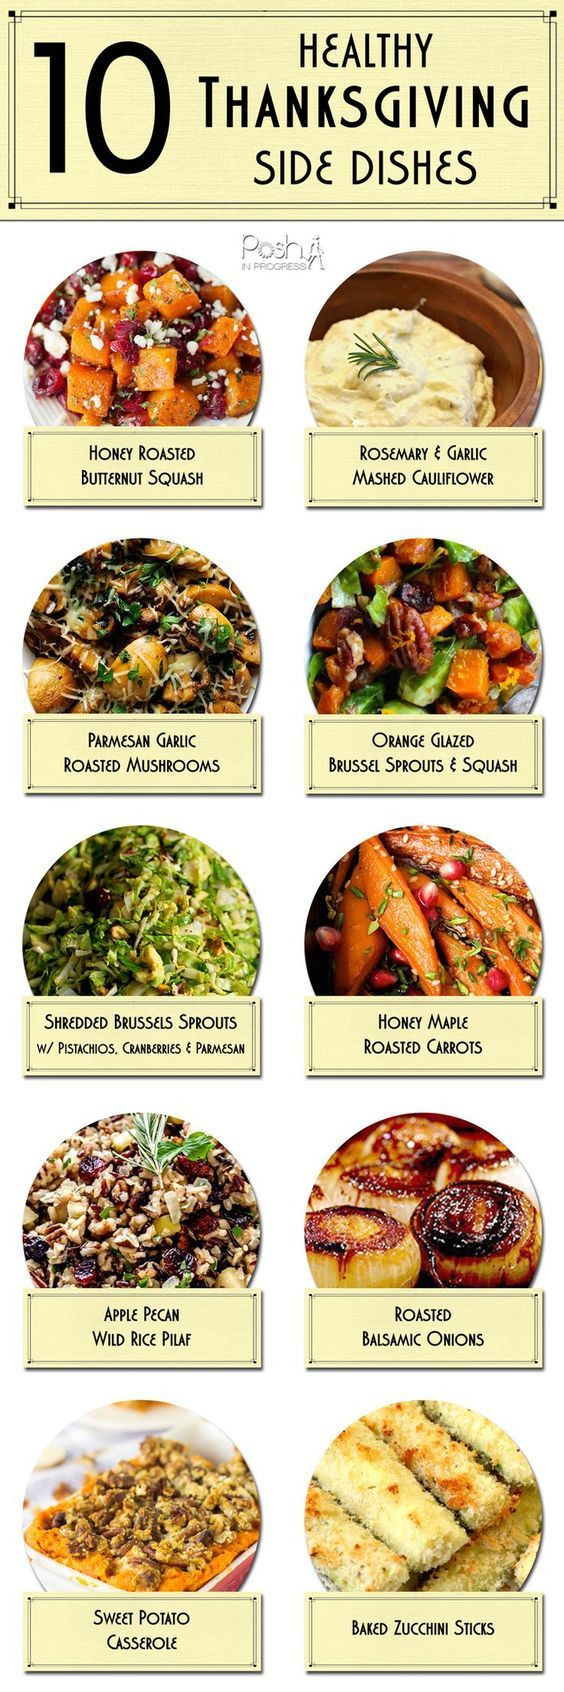 Healthy Thanksgiving Sides  TASTY TUESDAY 10 Healthy Thanksgiving Side Dishes